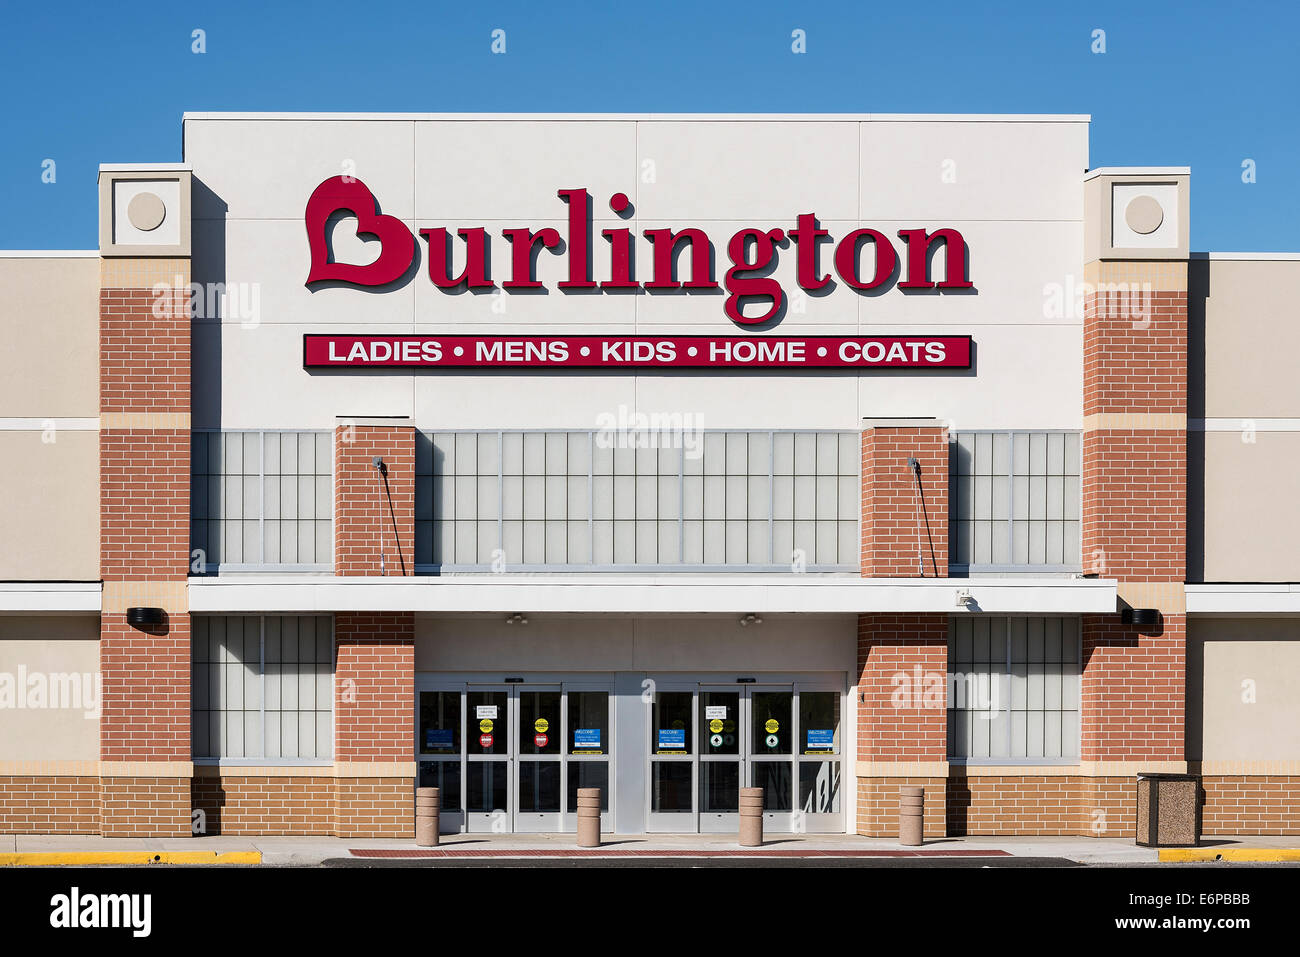 Burlington Coat Factory store exterior, Mt. Laural, New Jersey, USA - Stock Image